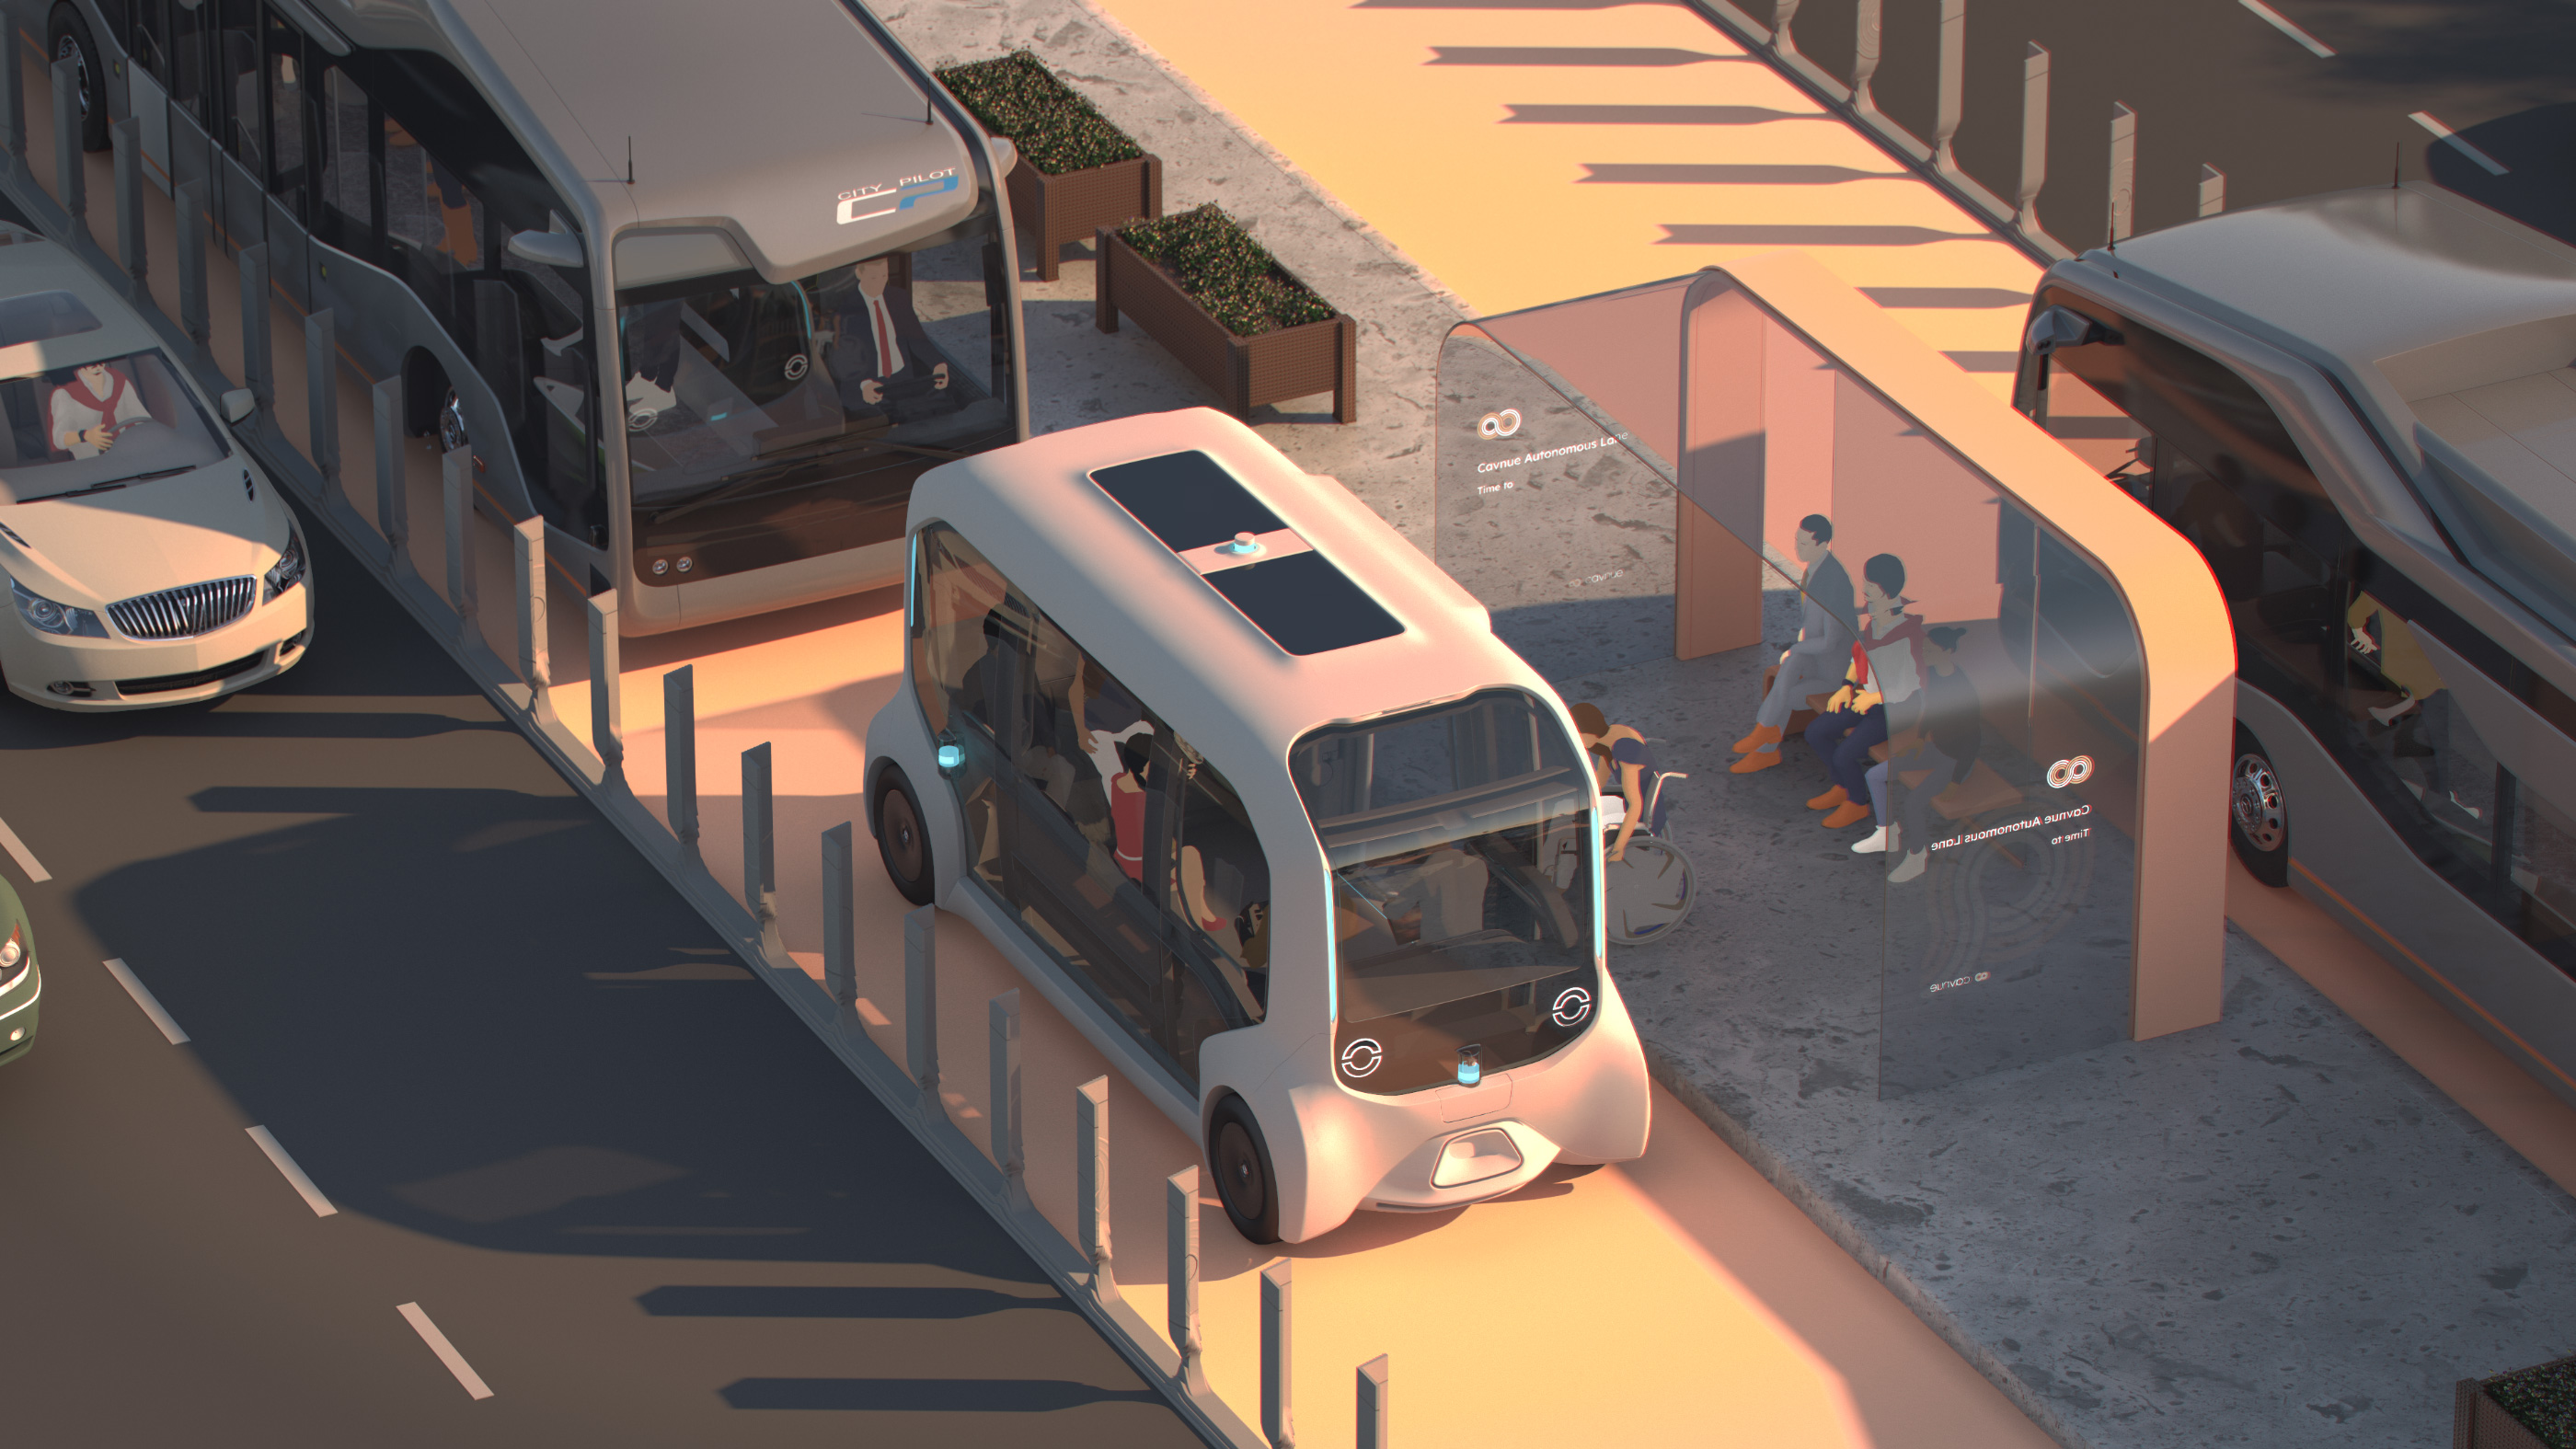 Rendering of someone waiting for a self-driving bus